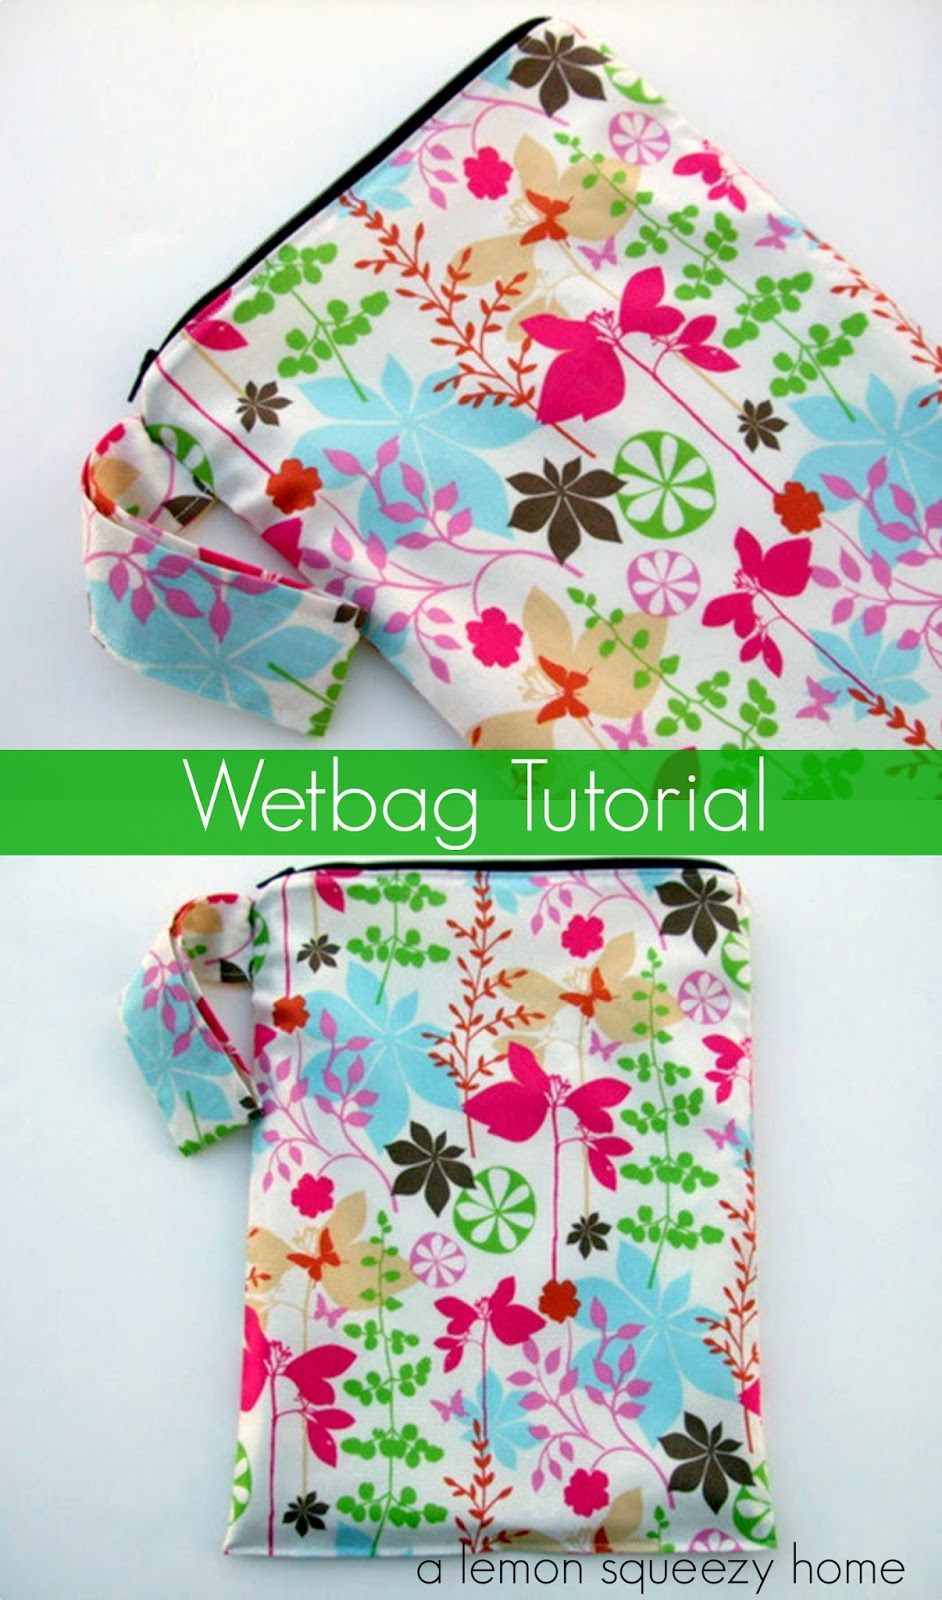 Wetbag Tutorial // a lemon squeezy home